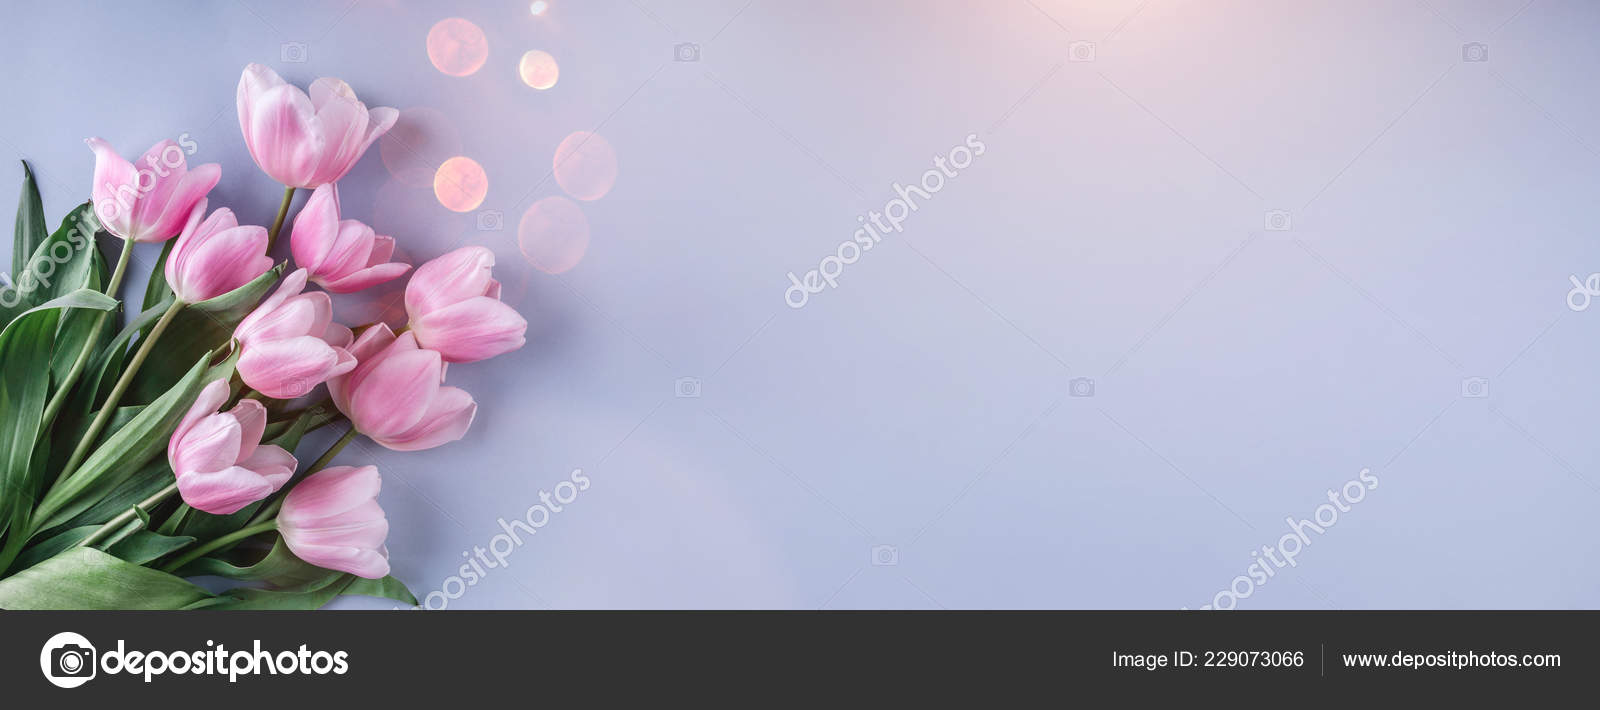 Bouquet Pink Tulips Flowers Light Blue Background Greeting